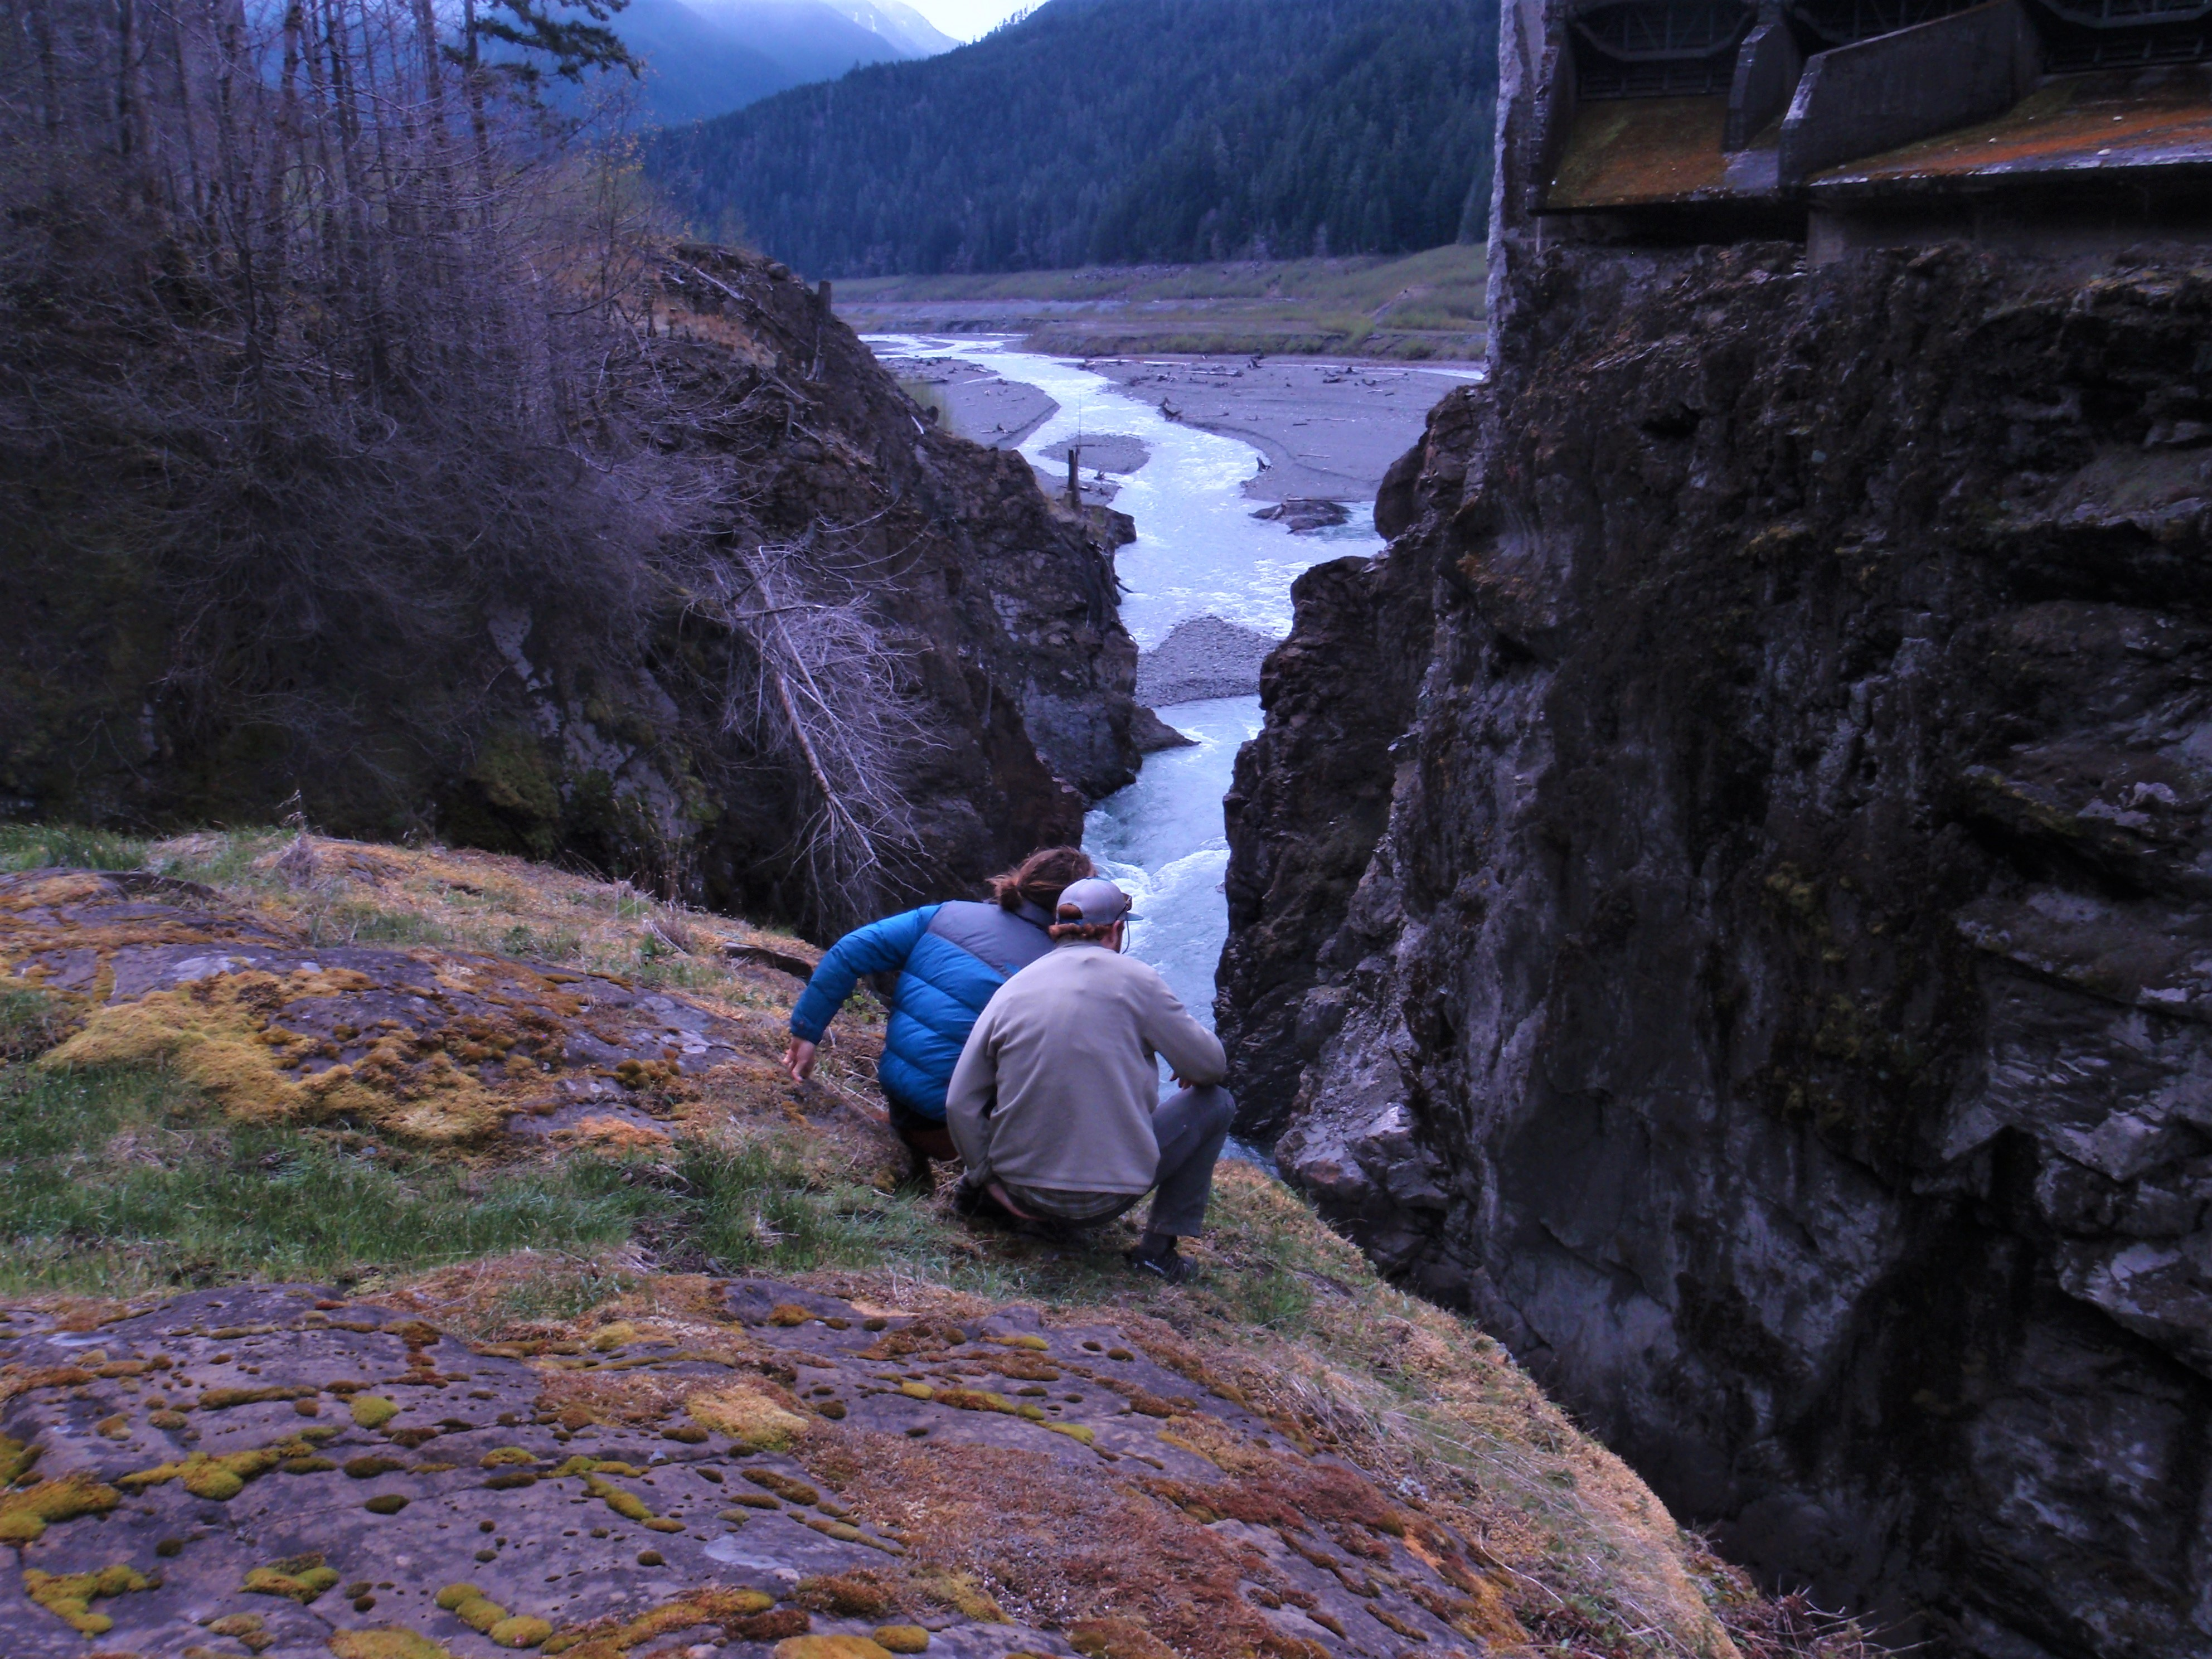 Students peer into Glines Canyon on the Elwha River, site of the former Glines Canyon dam.